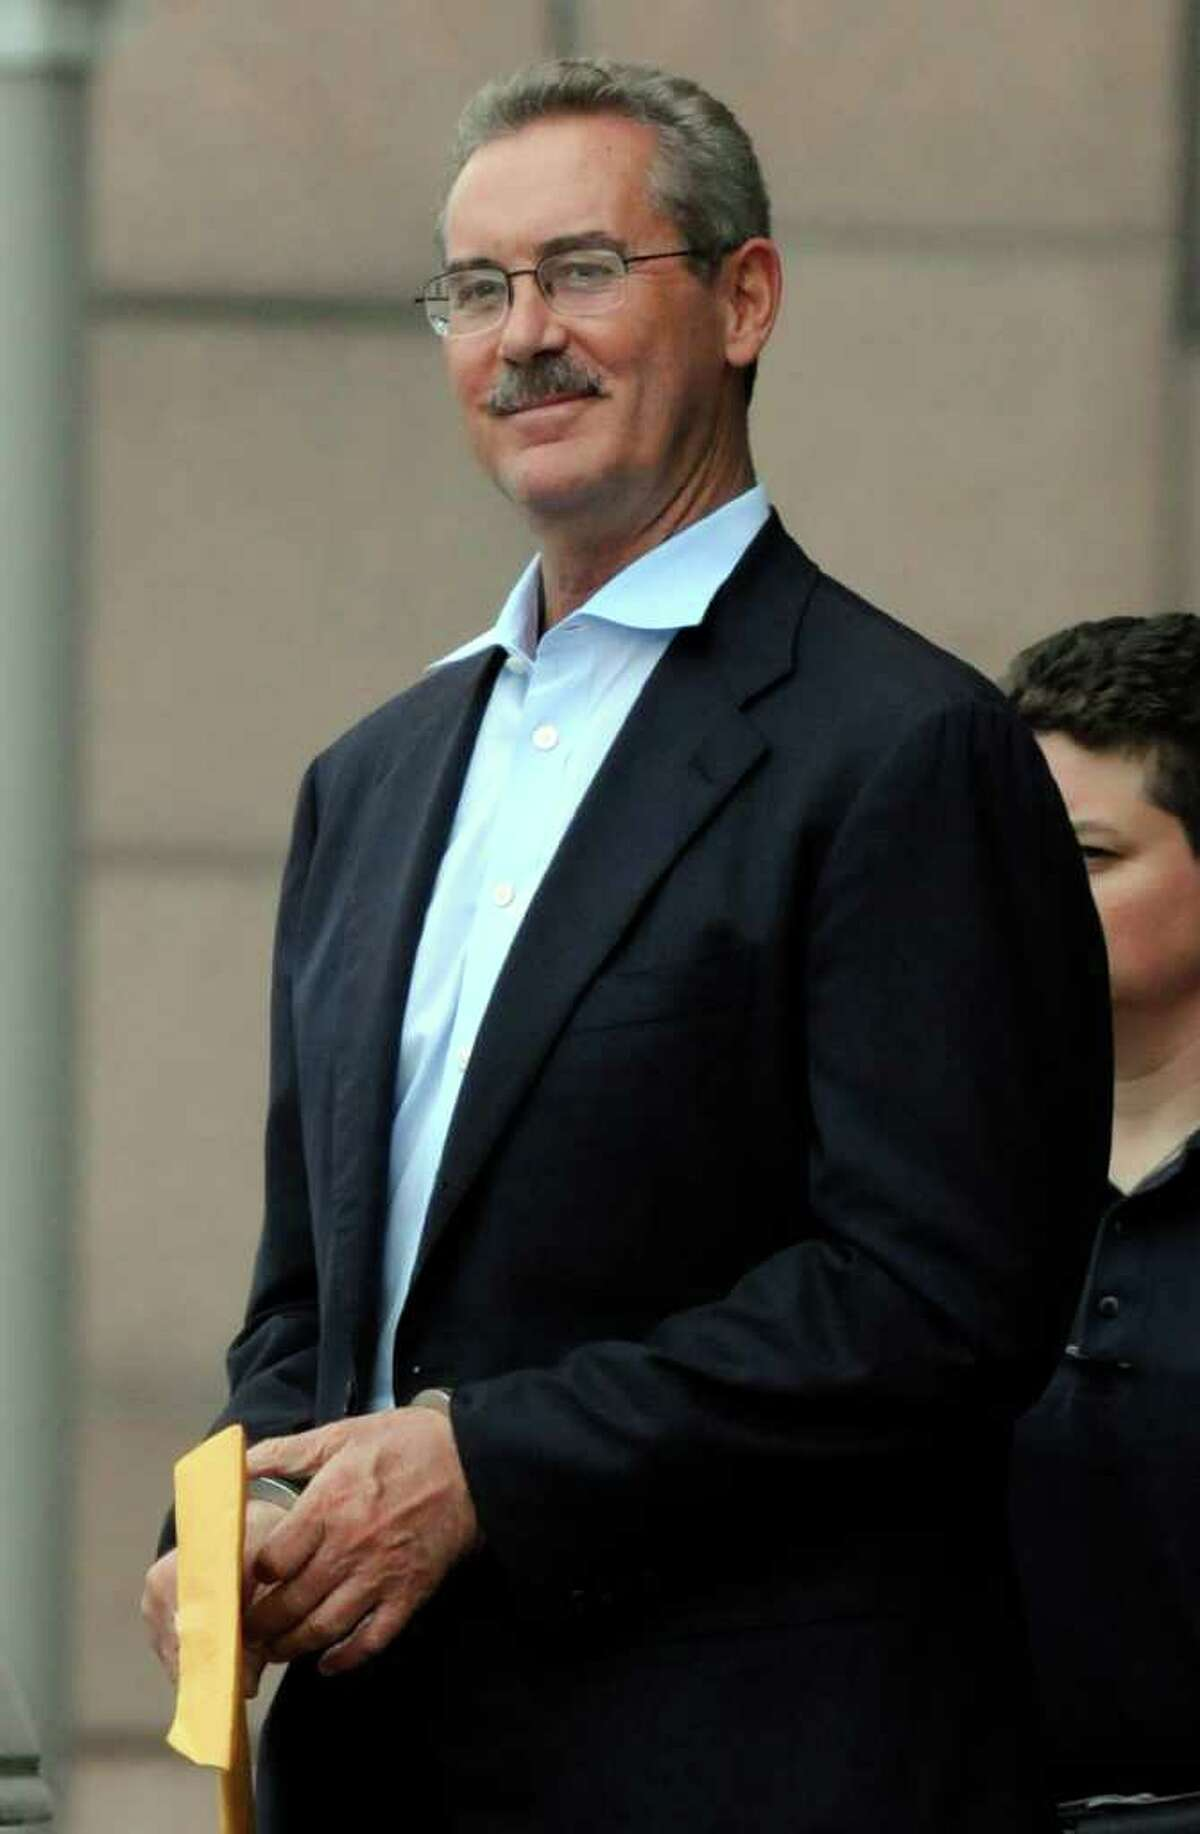 FILE - In this June 29, 2009 file photo, billionaire R. Allen Stanford smiles as he is escorted out of the federal courthouse in Houston. Federal prosecutors say Thursday, Dec. 15, 2011 that jailed Texas financier Stanford, who was declared incompetent to stand trial earlier this year, is now competent to be tried next month. Stanford is accused of bilking investors out of $7 billion in a massive Ponzi scheme.